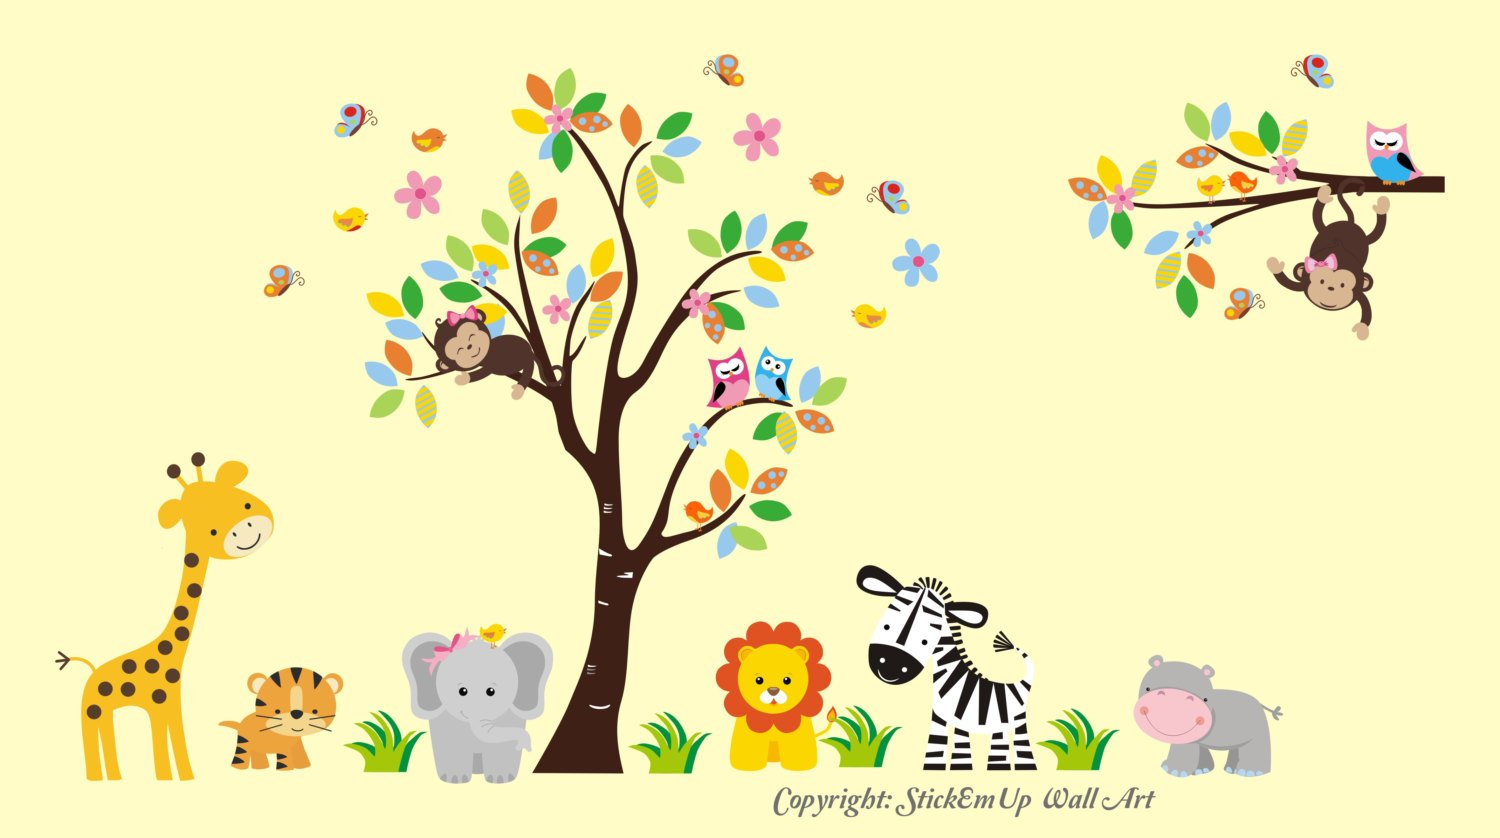 Amazon.com: Wall Decals for Kids - Large Tree Decal - Nursery Room ...